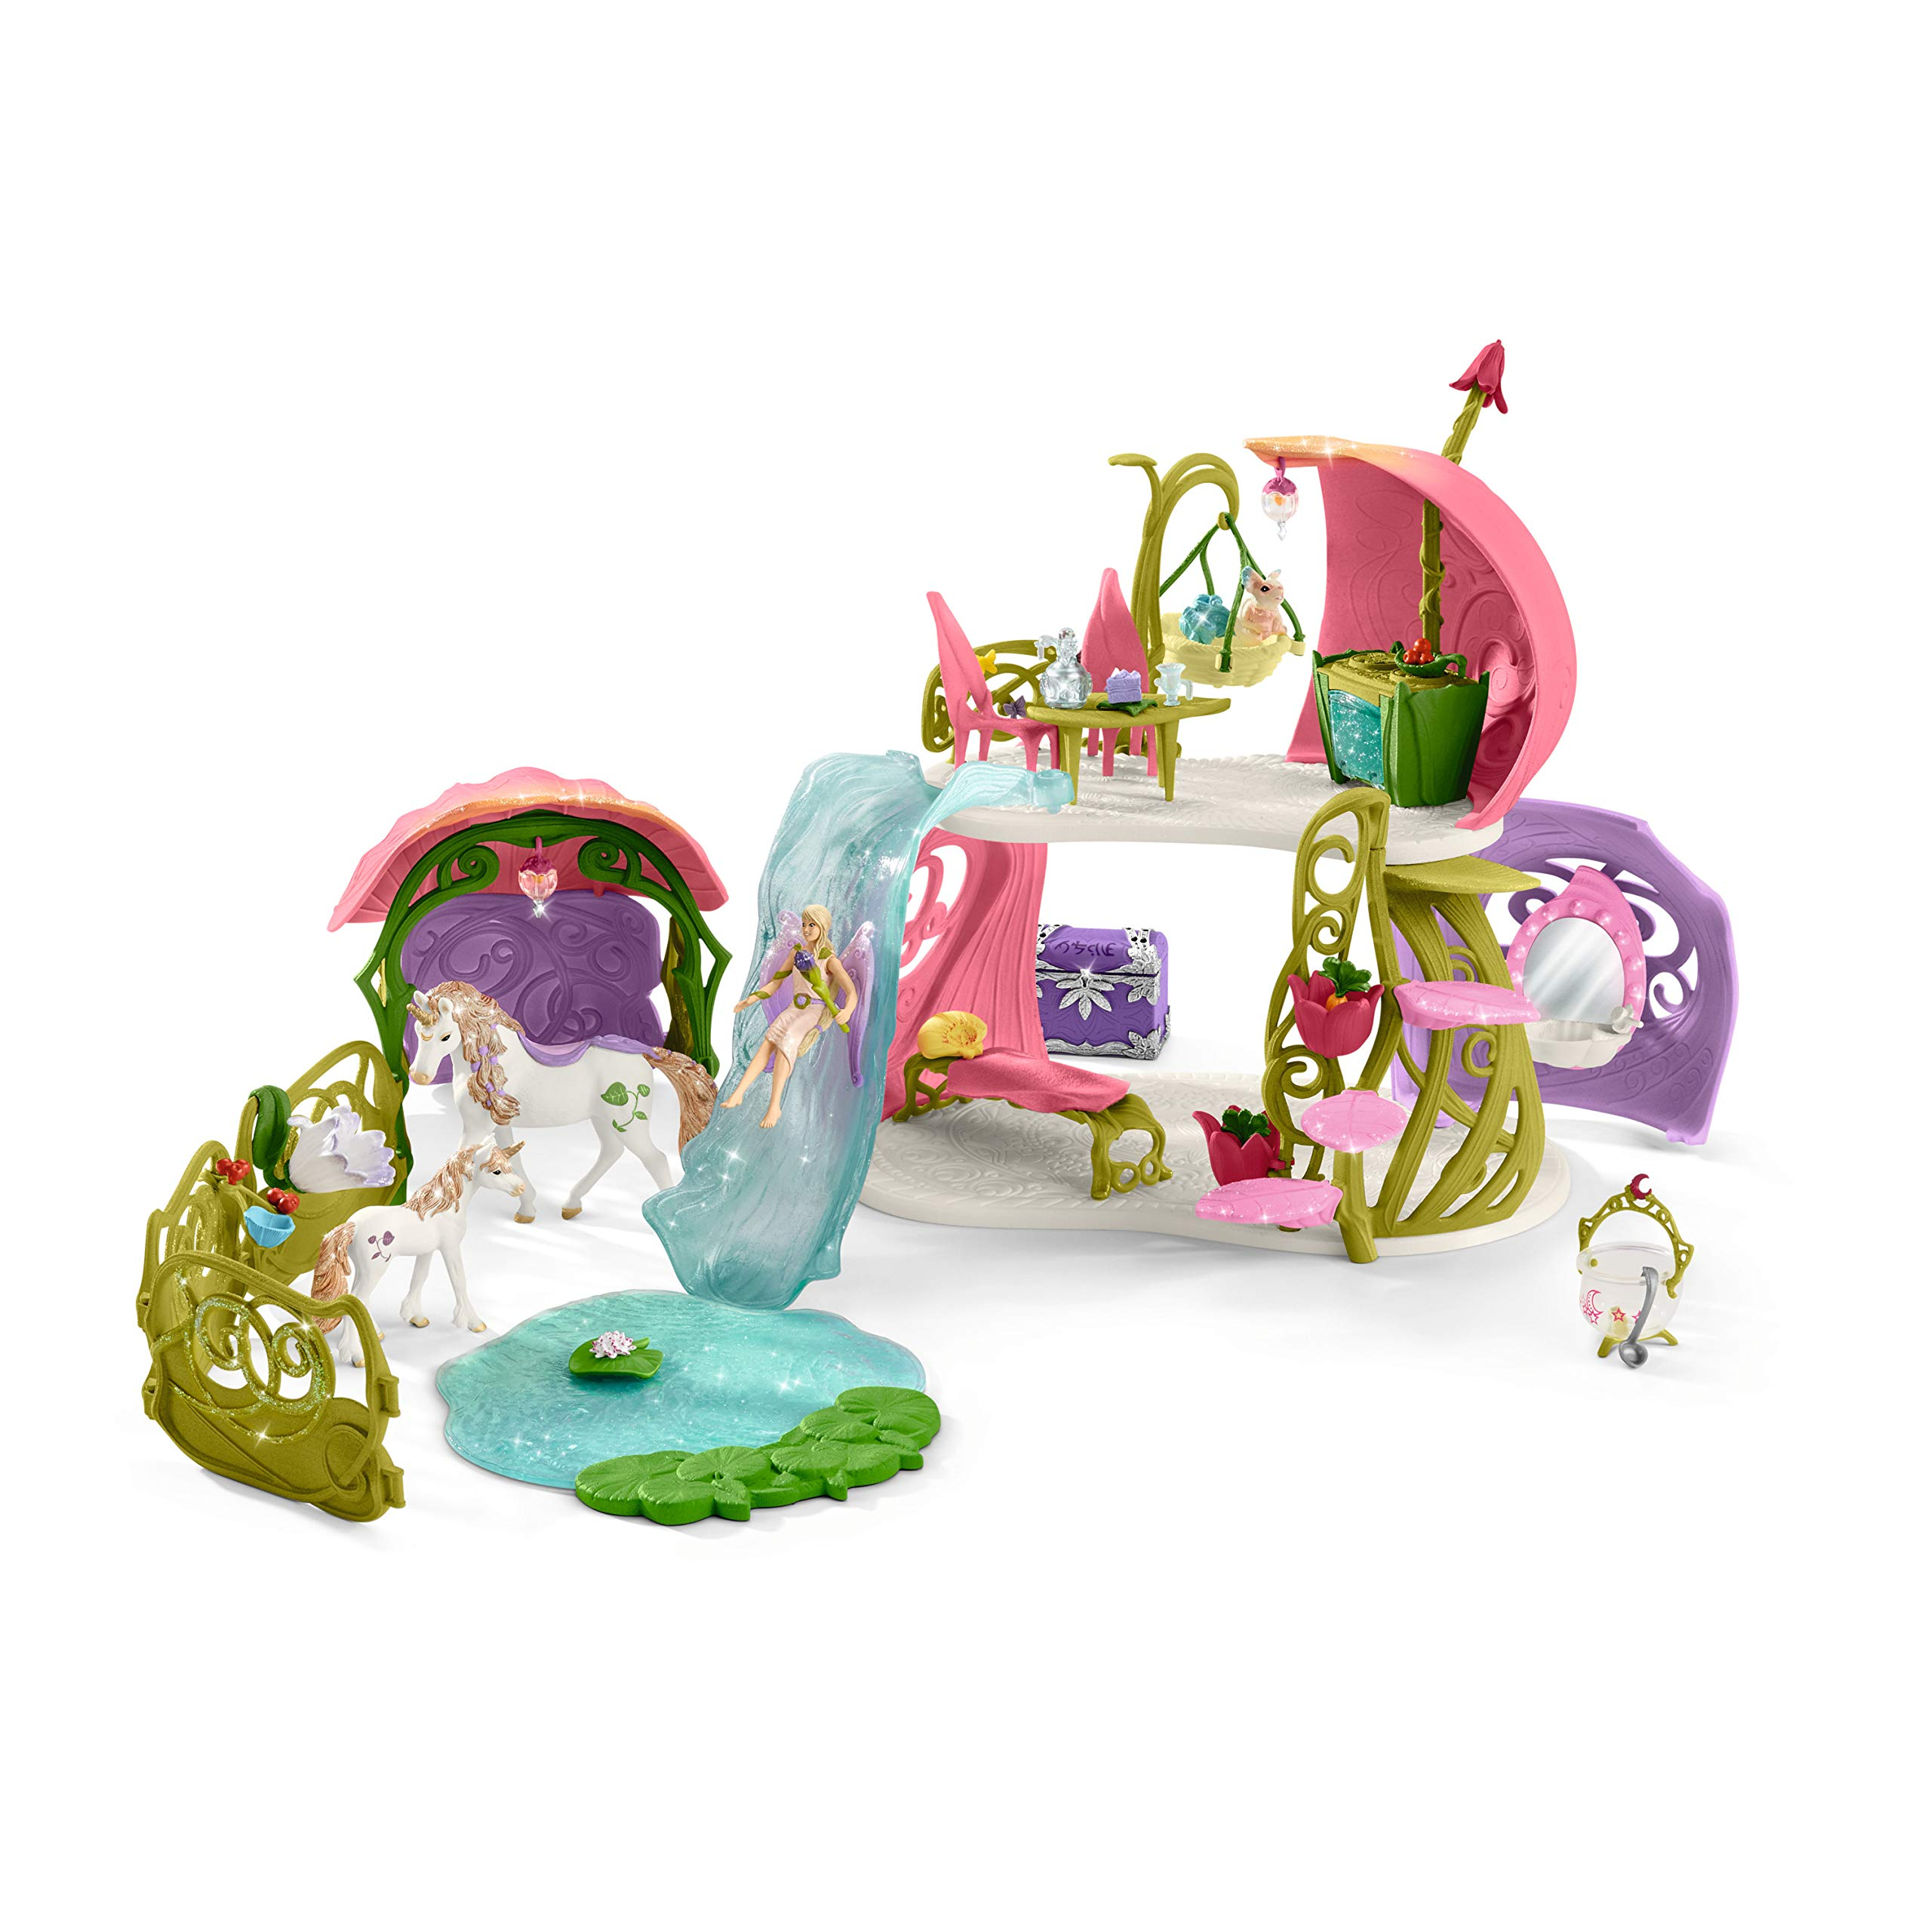 Schleich Glittering Flower House with Unicorns, Lake and Stable, Multicolor by Schleich (Image #4)